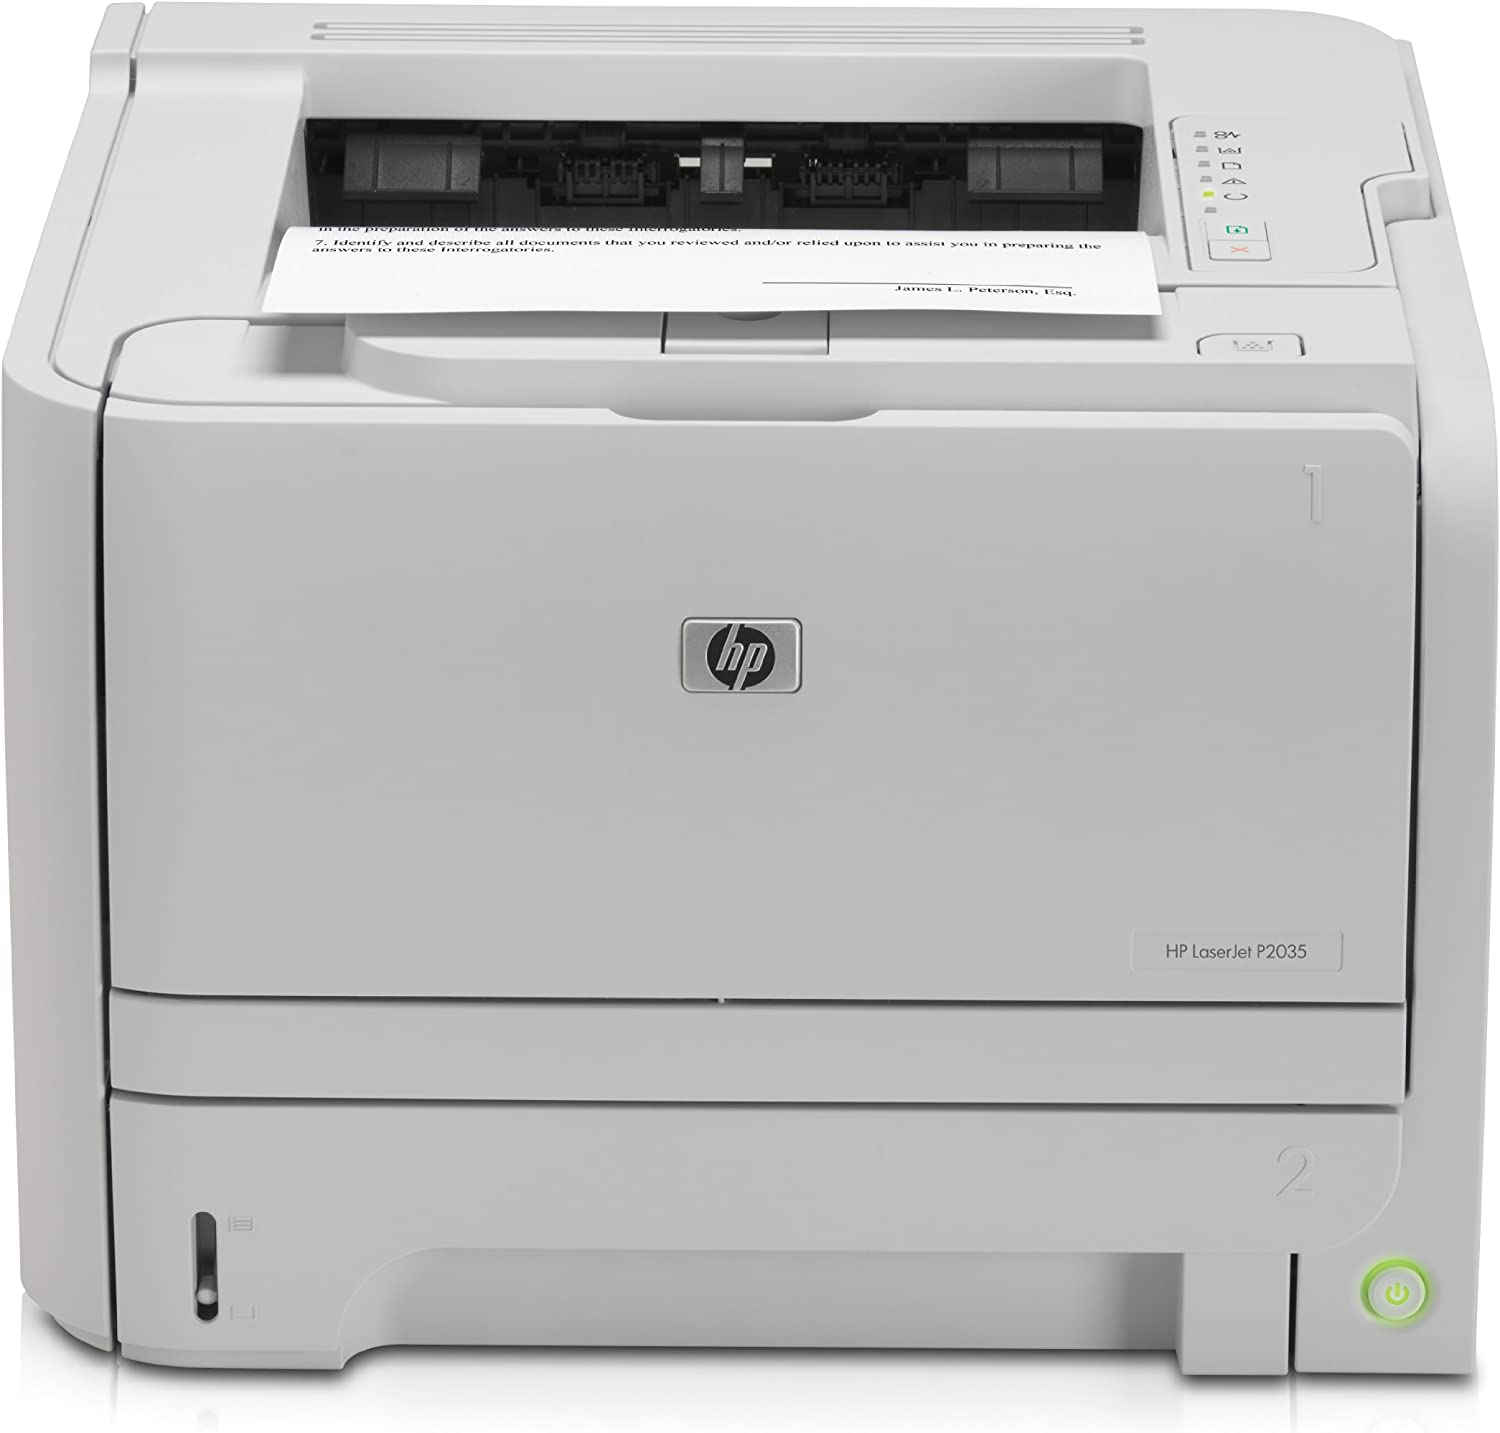 HP Laserjet P2035 Printer : Laser Printers : Electronics